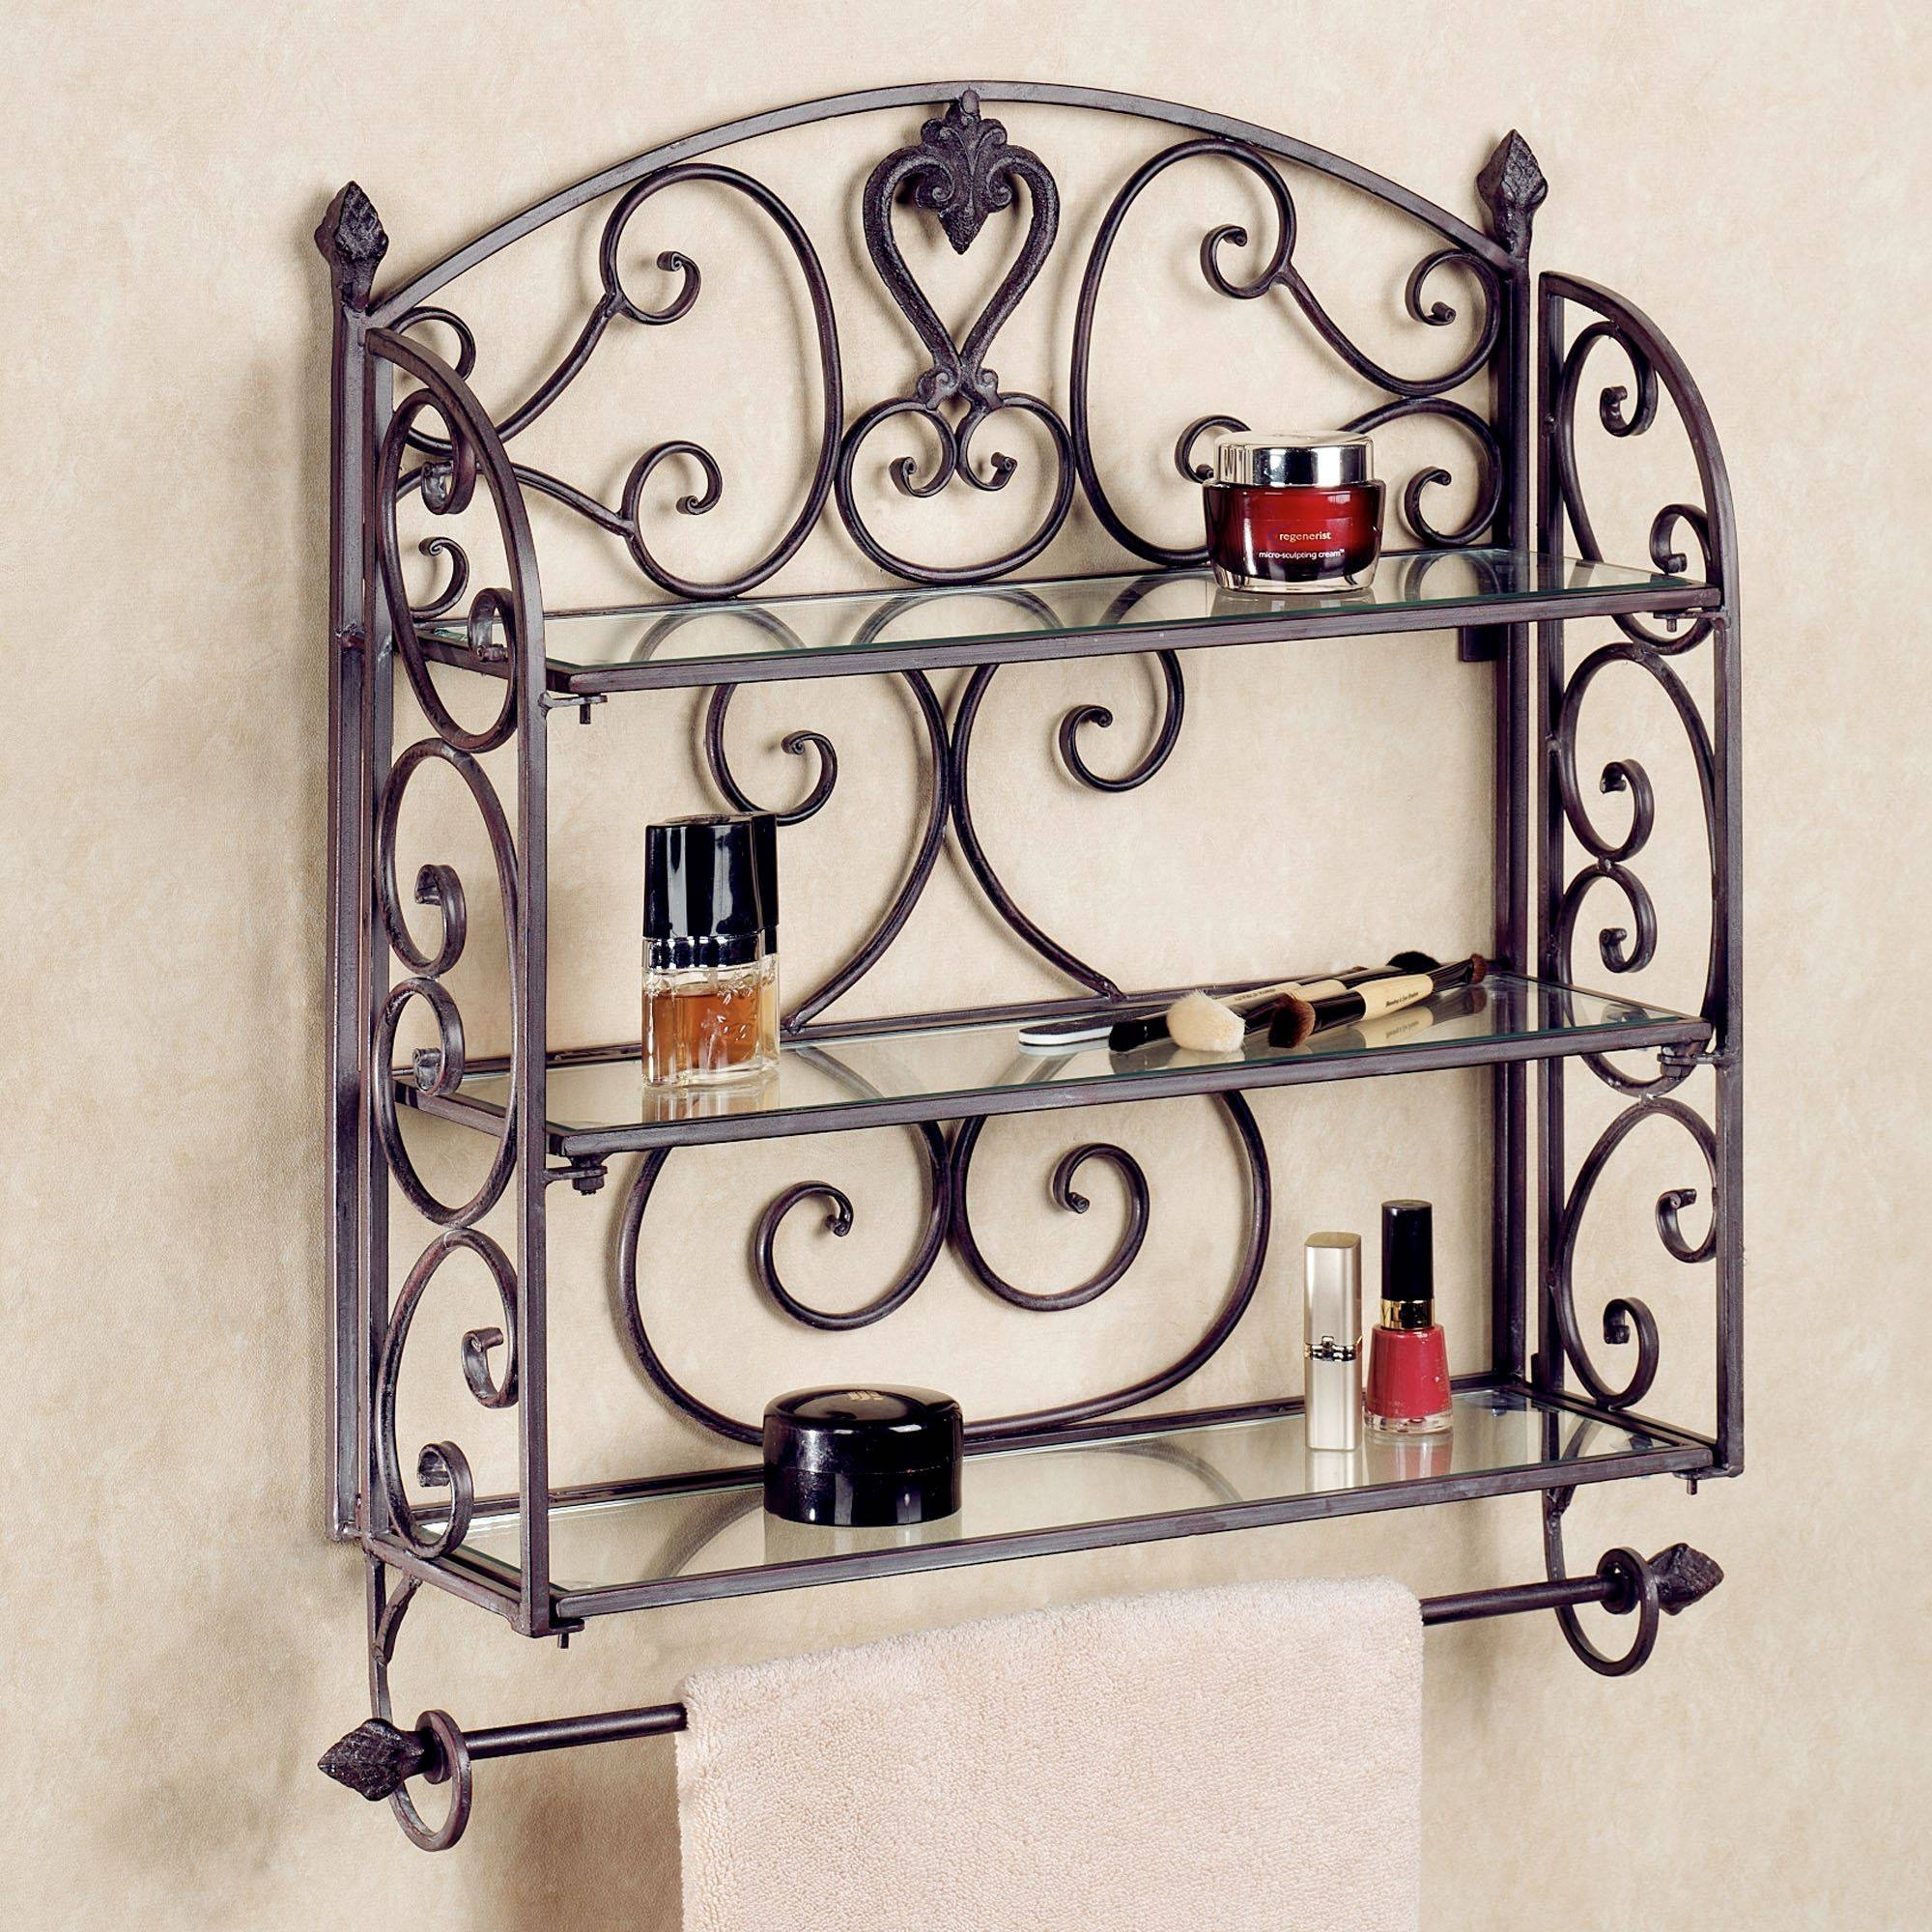 Aldabella Tuscan Slate Wall Shelf Towel Bar throughout Wrought Iron Bathroom Mirrors (Image 3 of 15)